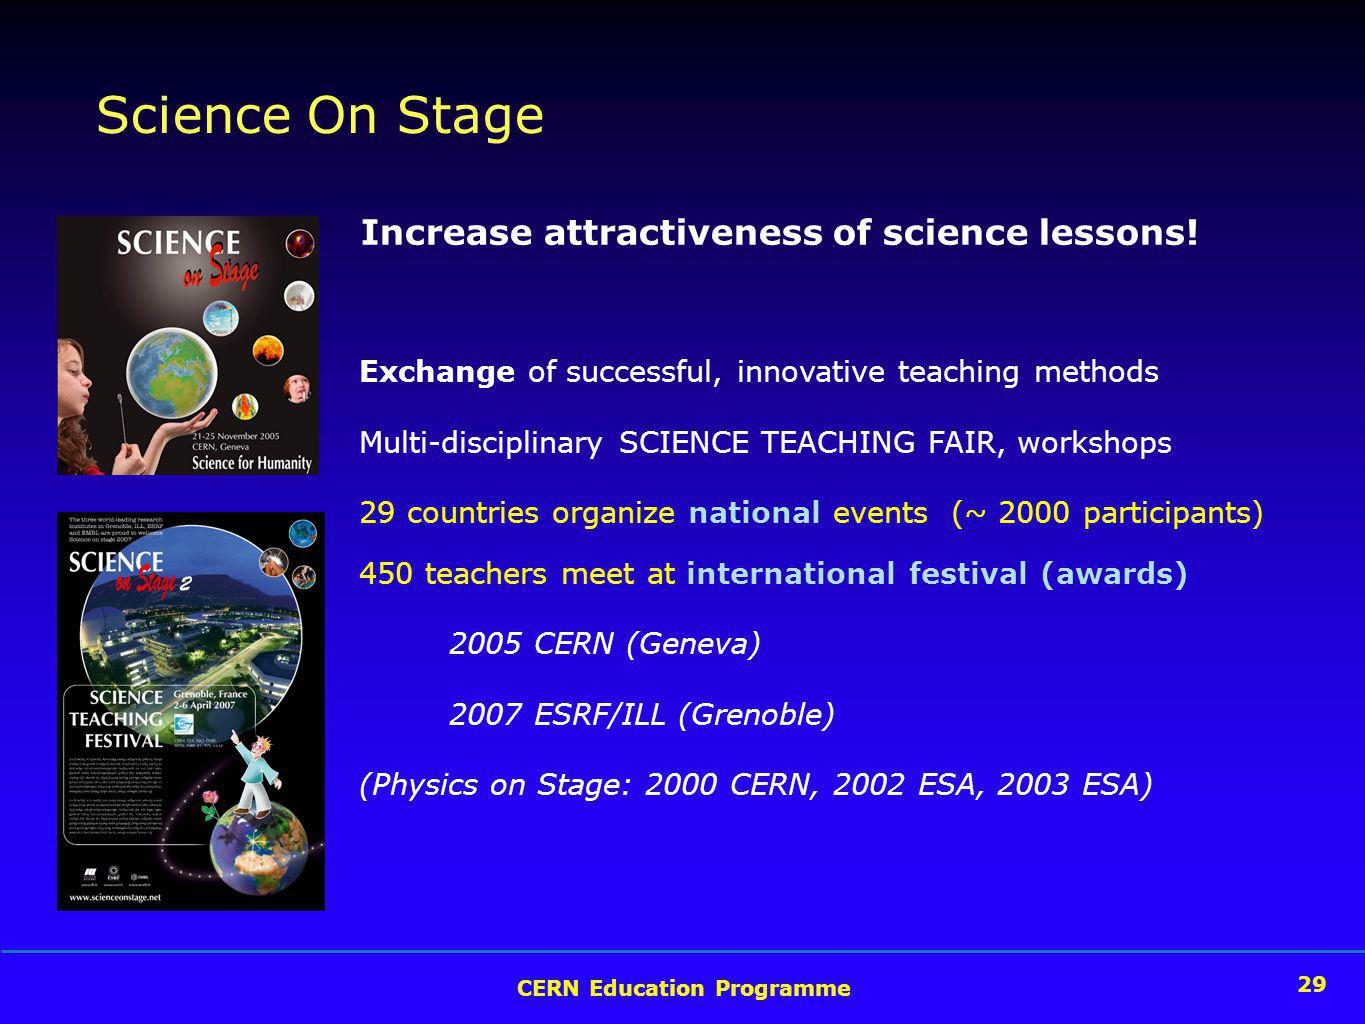 29 CERN Education Programme 29 Science On Stage Exchange of successful, innovative teaching methods Multi-disciplinary SCIENCE TEACHING FAIR, workshops 29 countries organize national events (~ 2000 participants) 450 teachers meet at international festival (awards) 2005 CERN (Geneva) 2007 ESRF/ILL (Grenoble) (Physics on Stage: 2000 CERN, 2002 ESA, 2003 ESA) Increase attractiveness of science lessons!